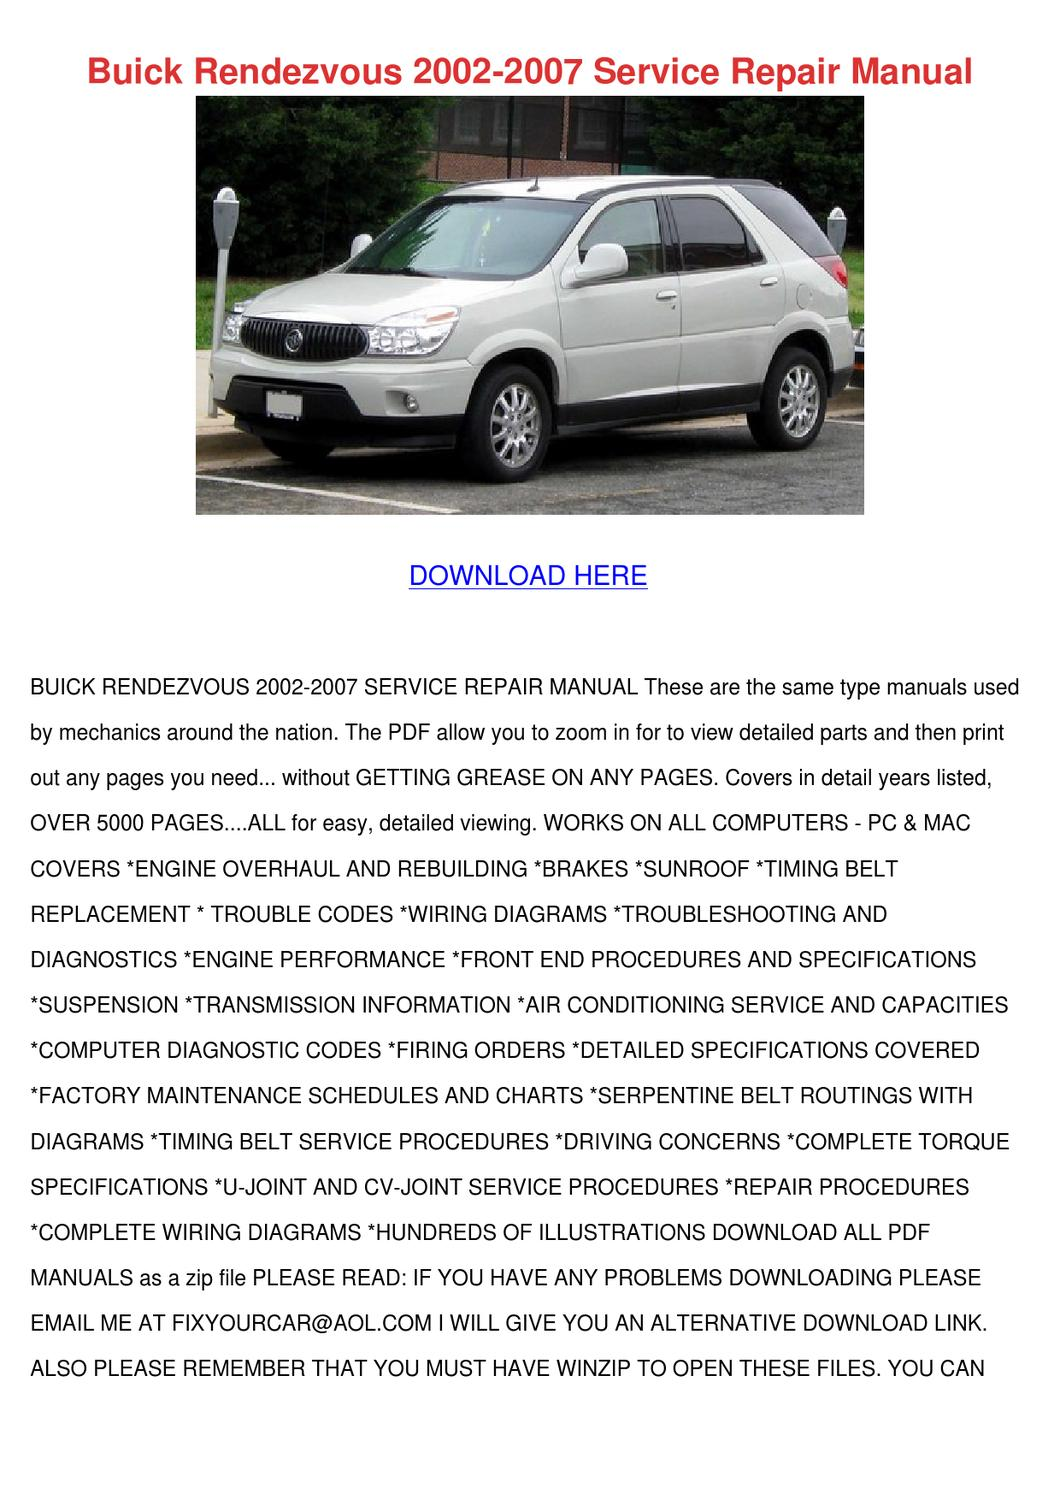 Buick Rendezvous 2002 2007 Service Repair Man By